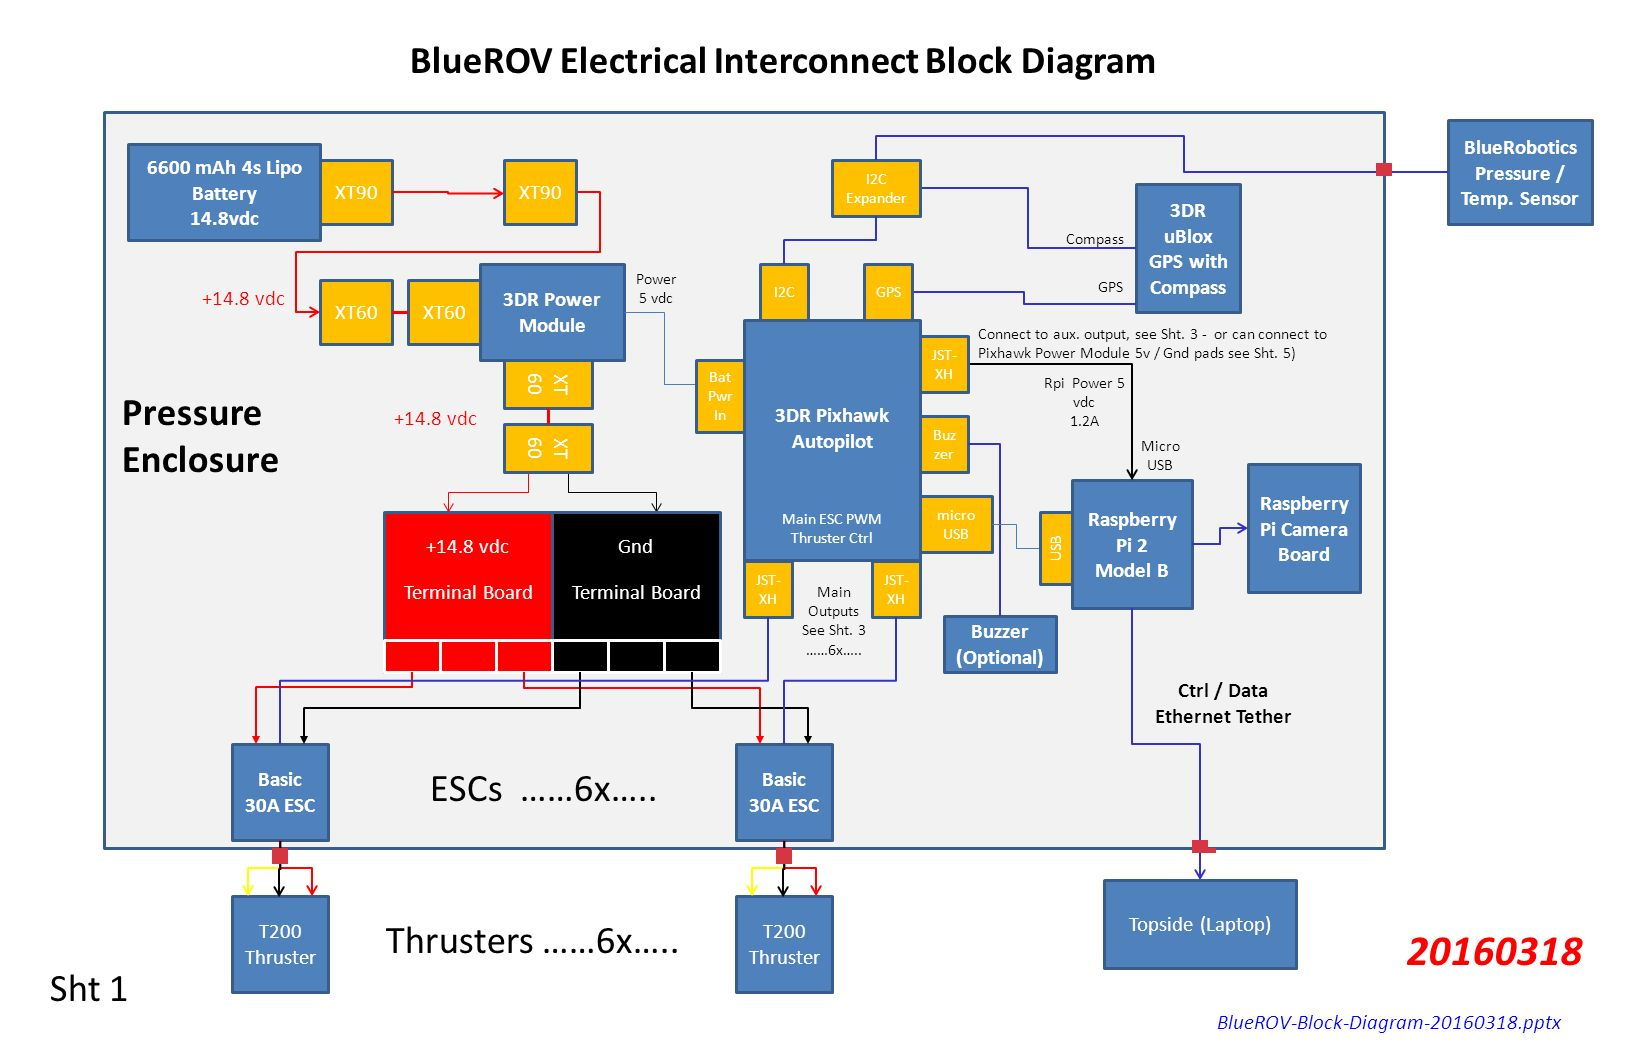 hight resolution of bluerov electrical interconnect block diagram